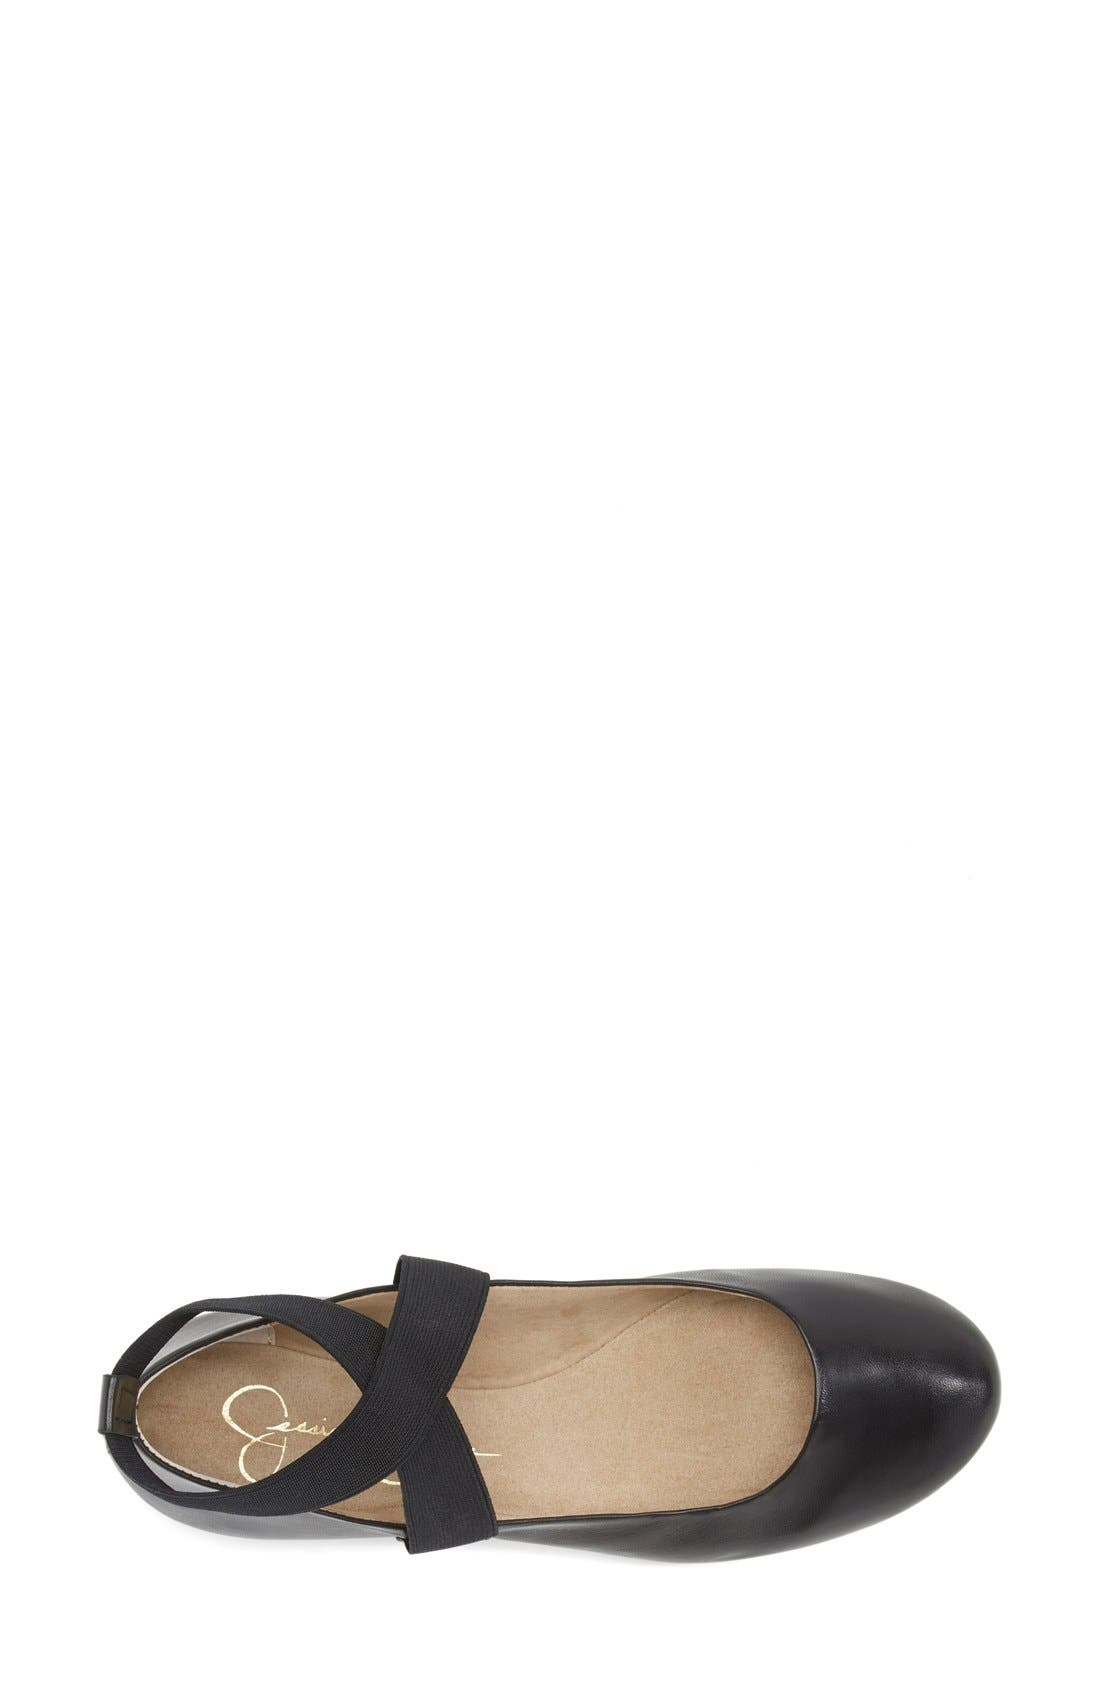 Alternate Image 3  - Jessica Simpson 'Mariza' Ballet Flat (Women)